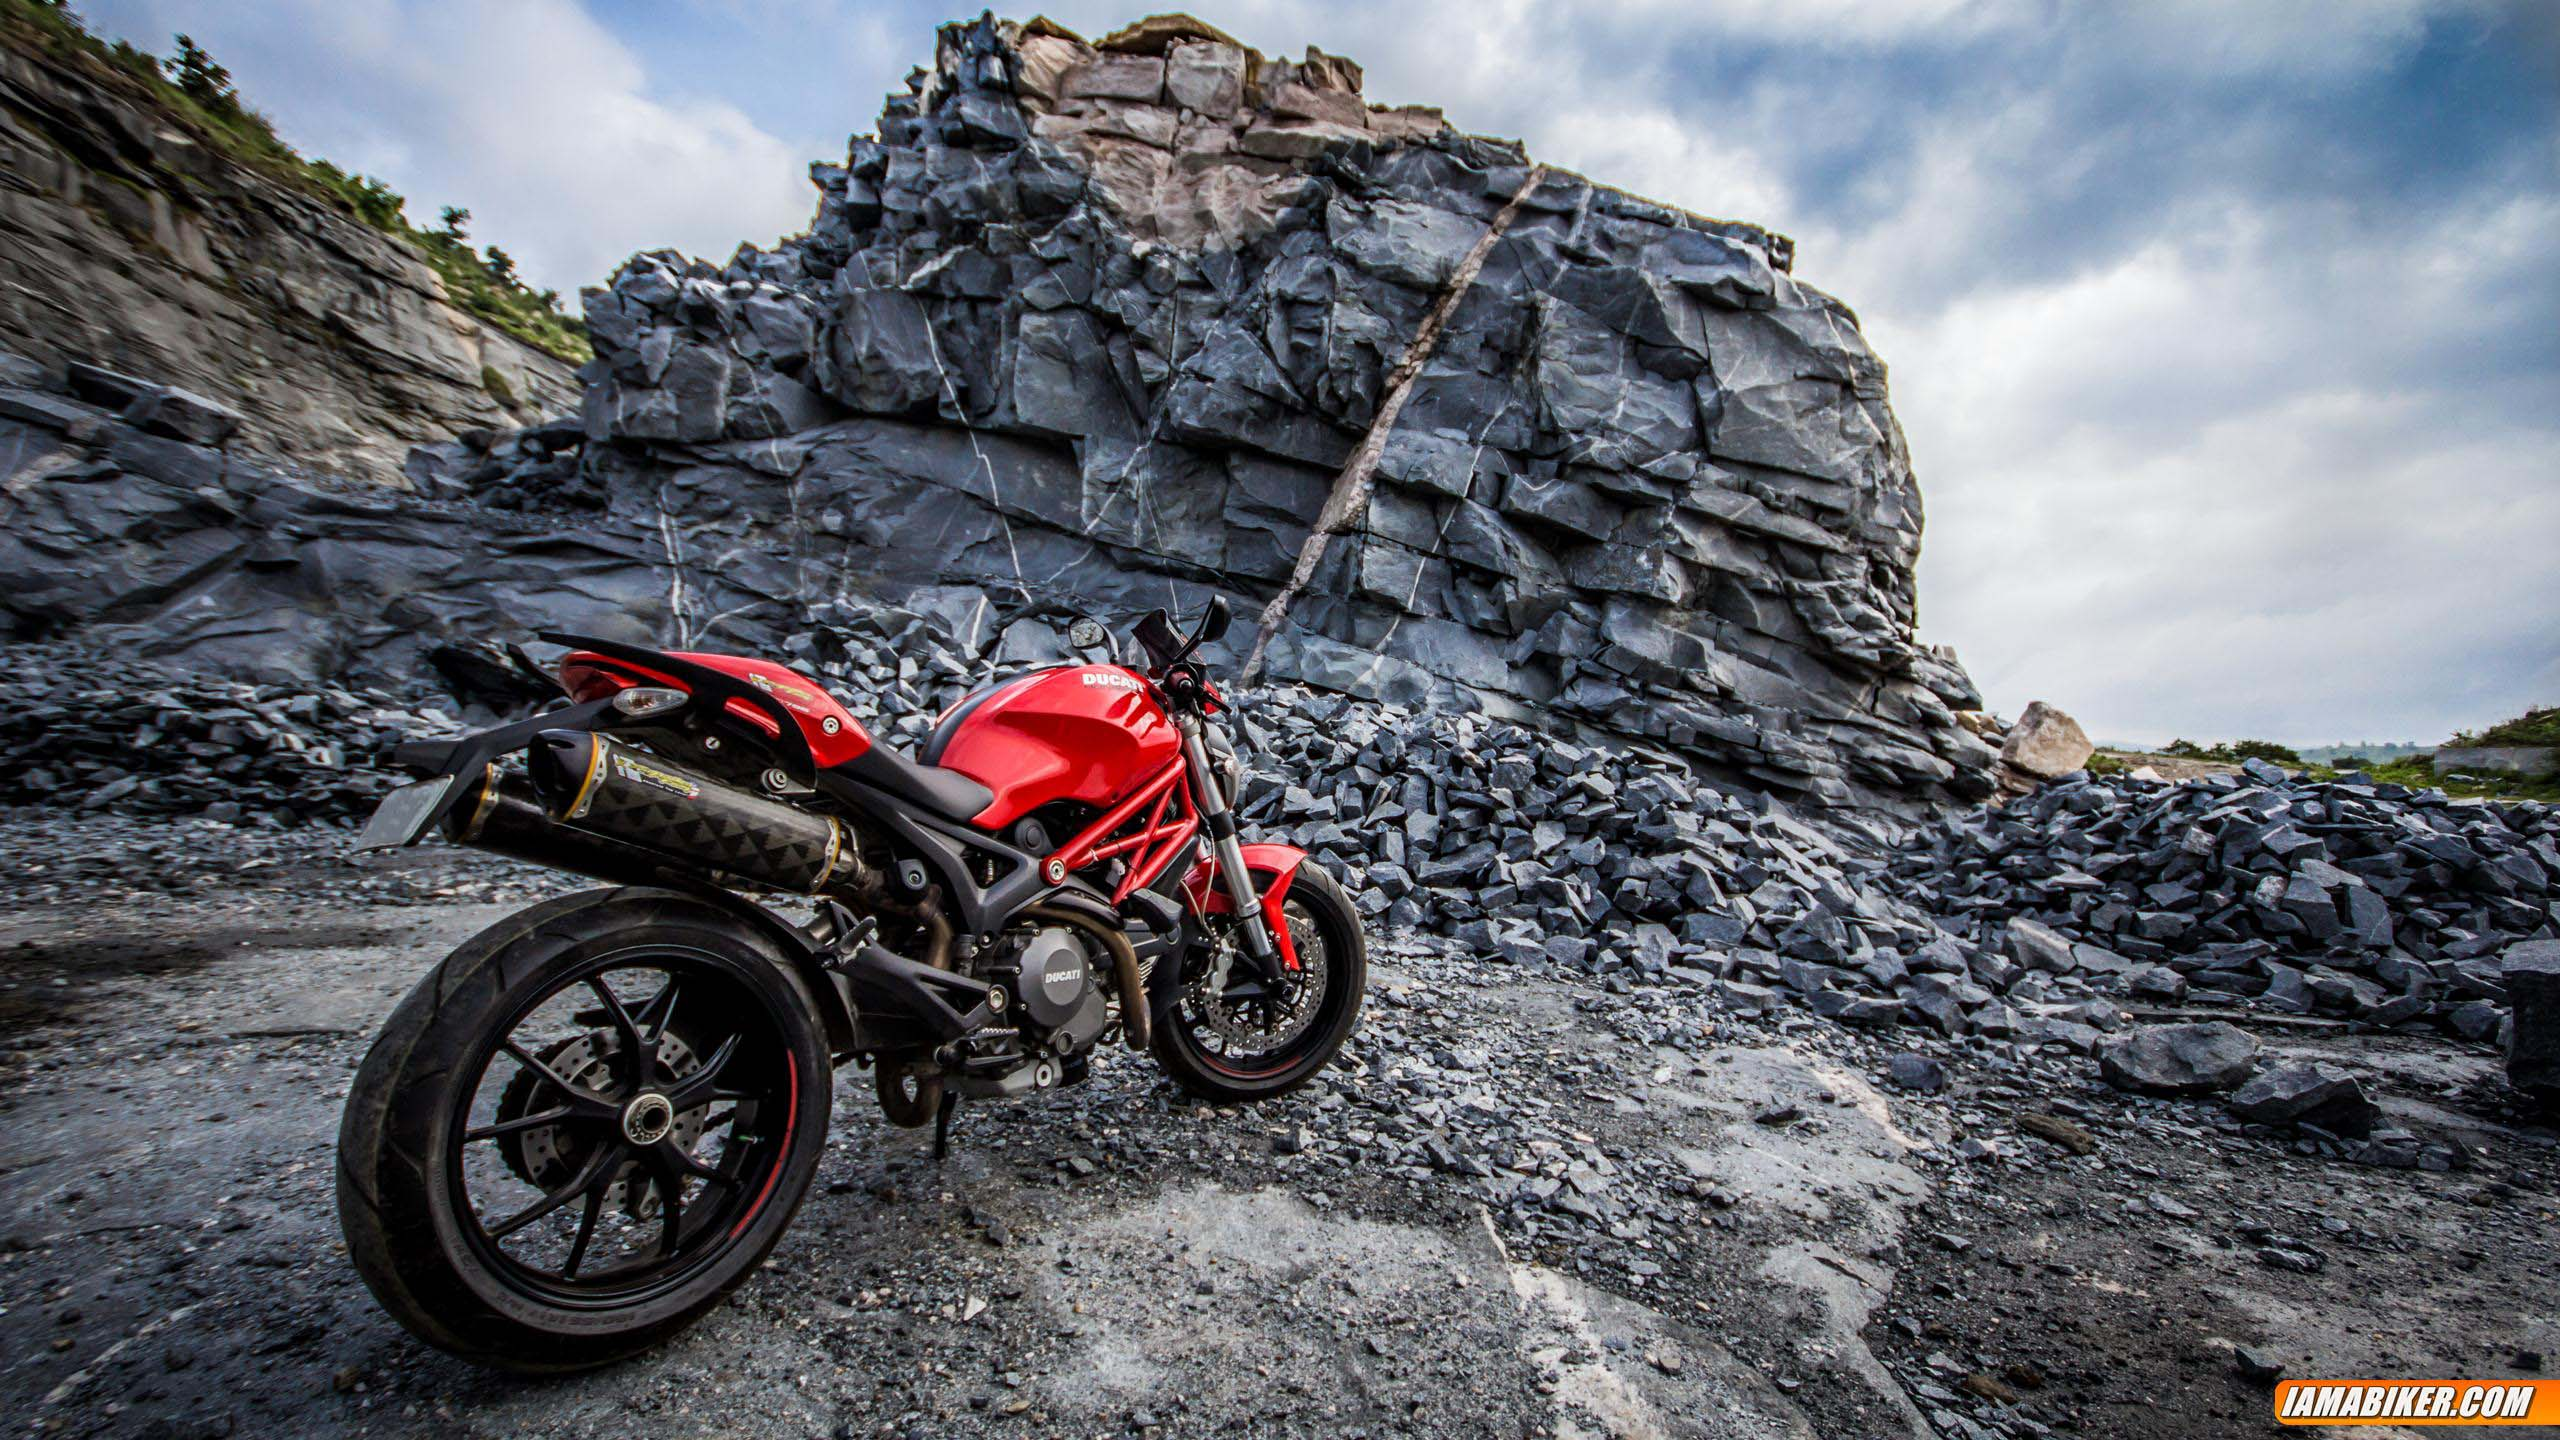 Ducati Monster 796 wallpapers - 08